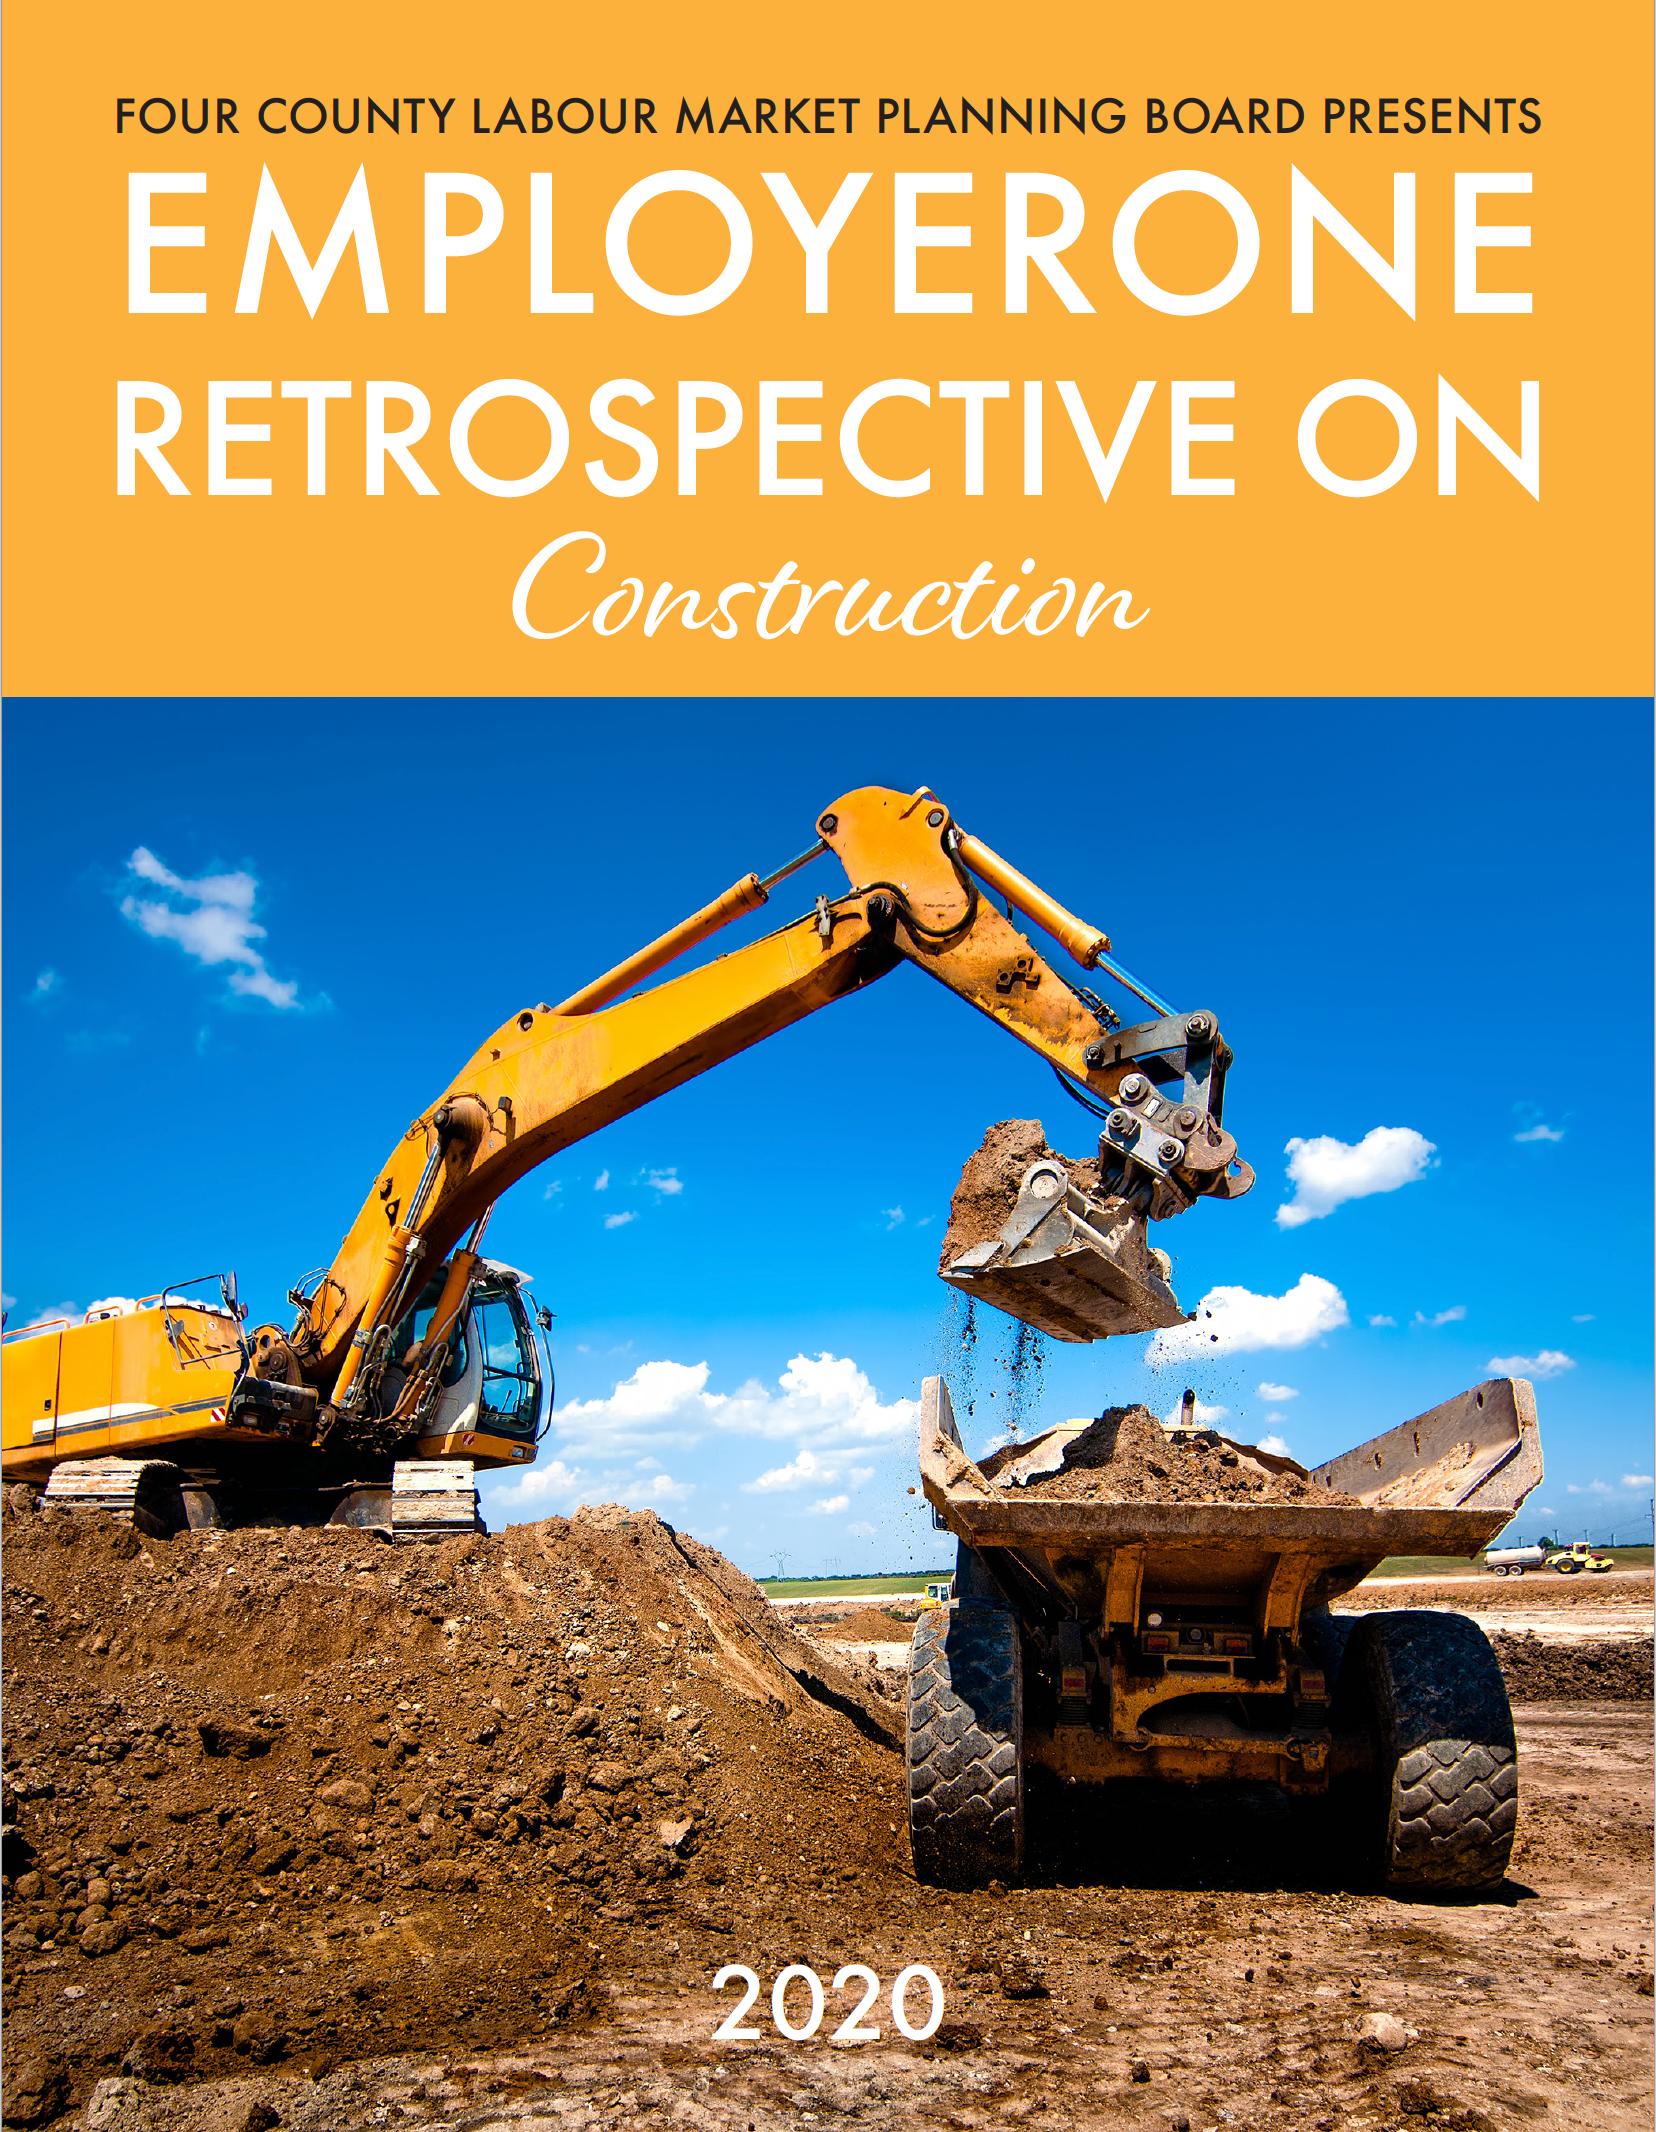 Retrospective on Construction